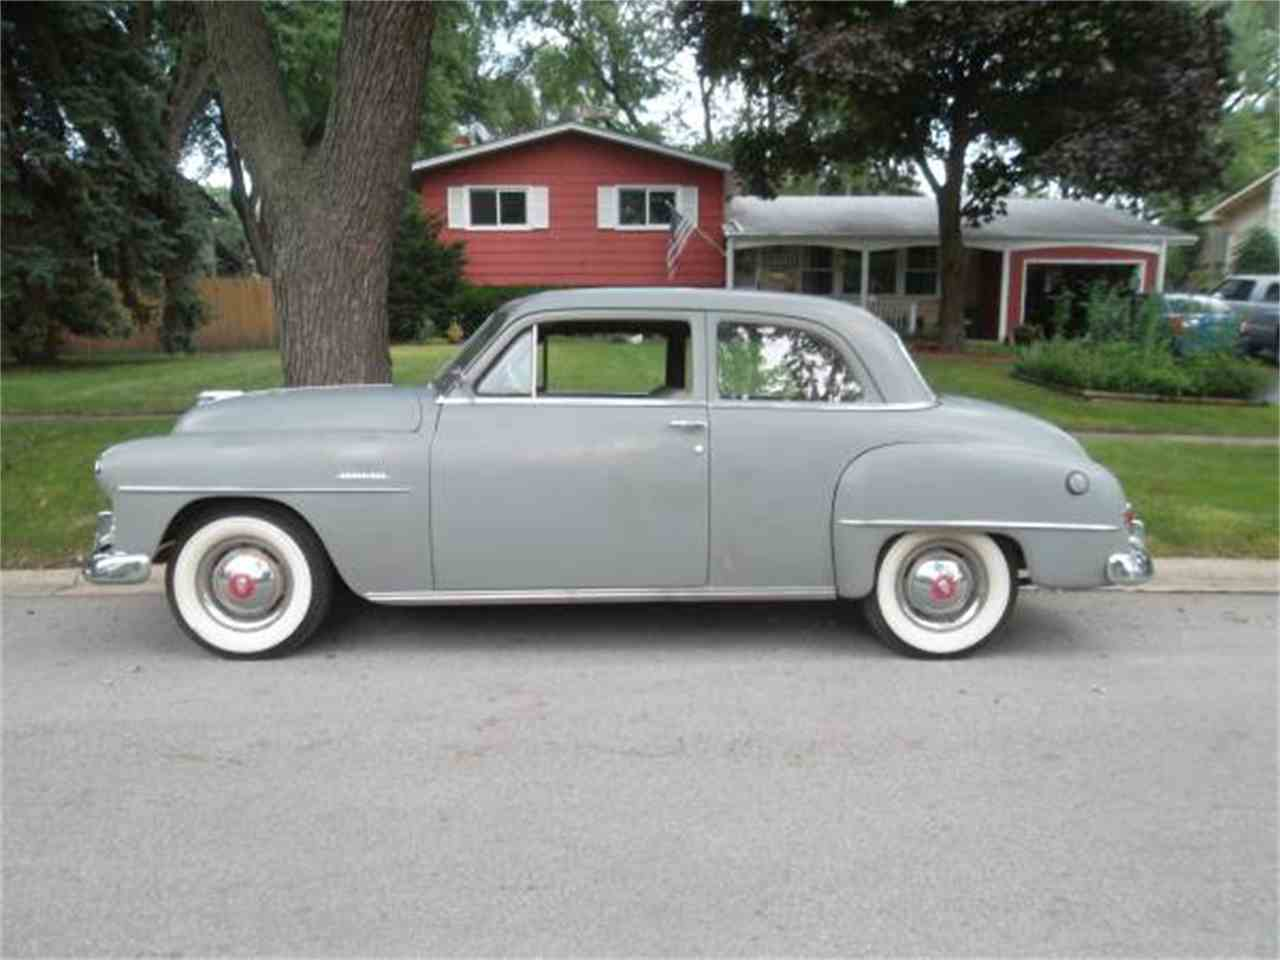 Large Picture of '51 Plymouth Cambridge located in Illinois - $14,900.00 Offered by a Private Seller - J590